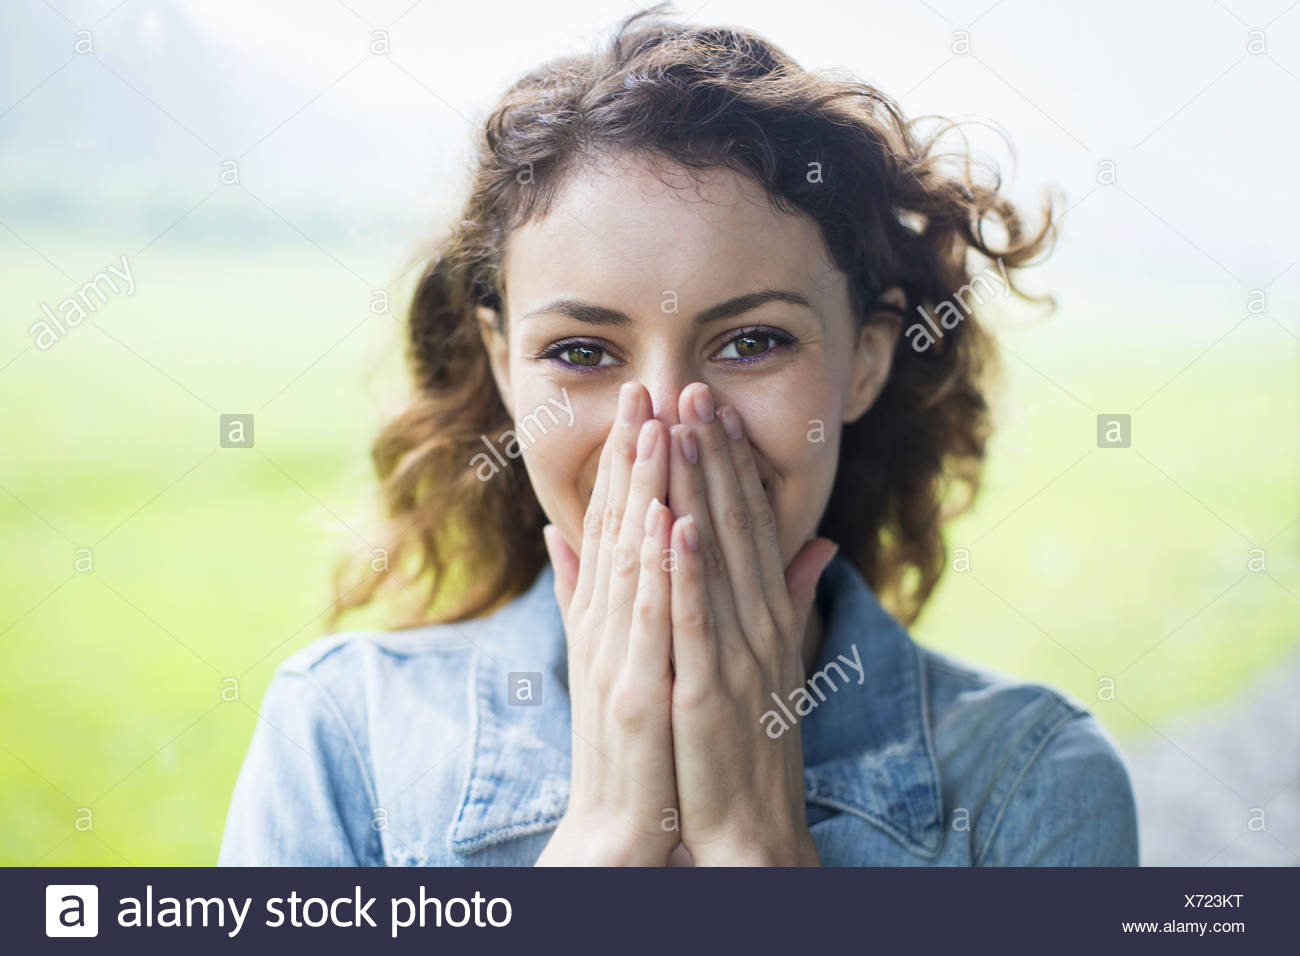 A young woman in a rural landscape with windblown curly hair. Covering her face with her hands and laughing. - Stock Image